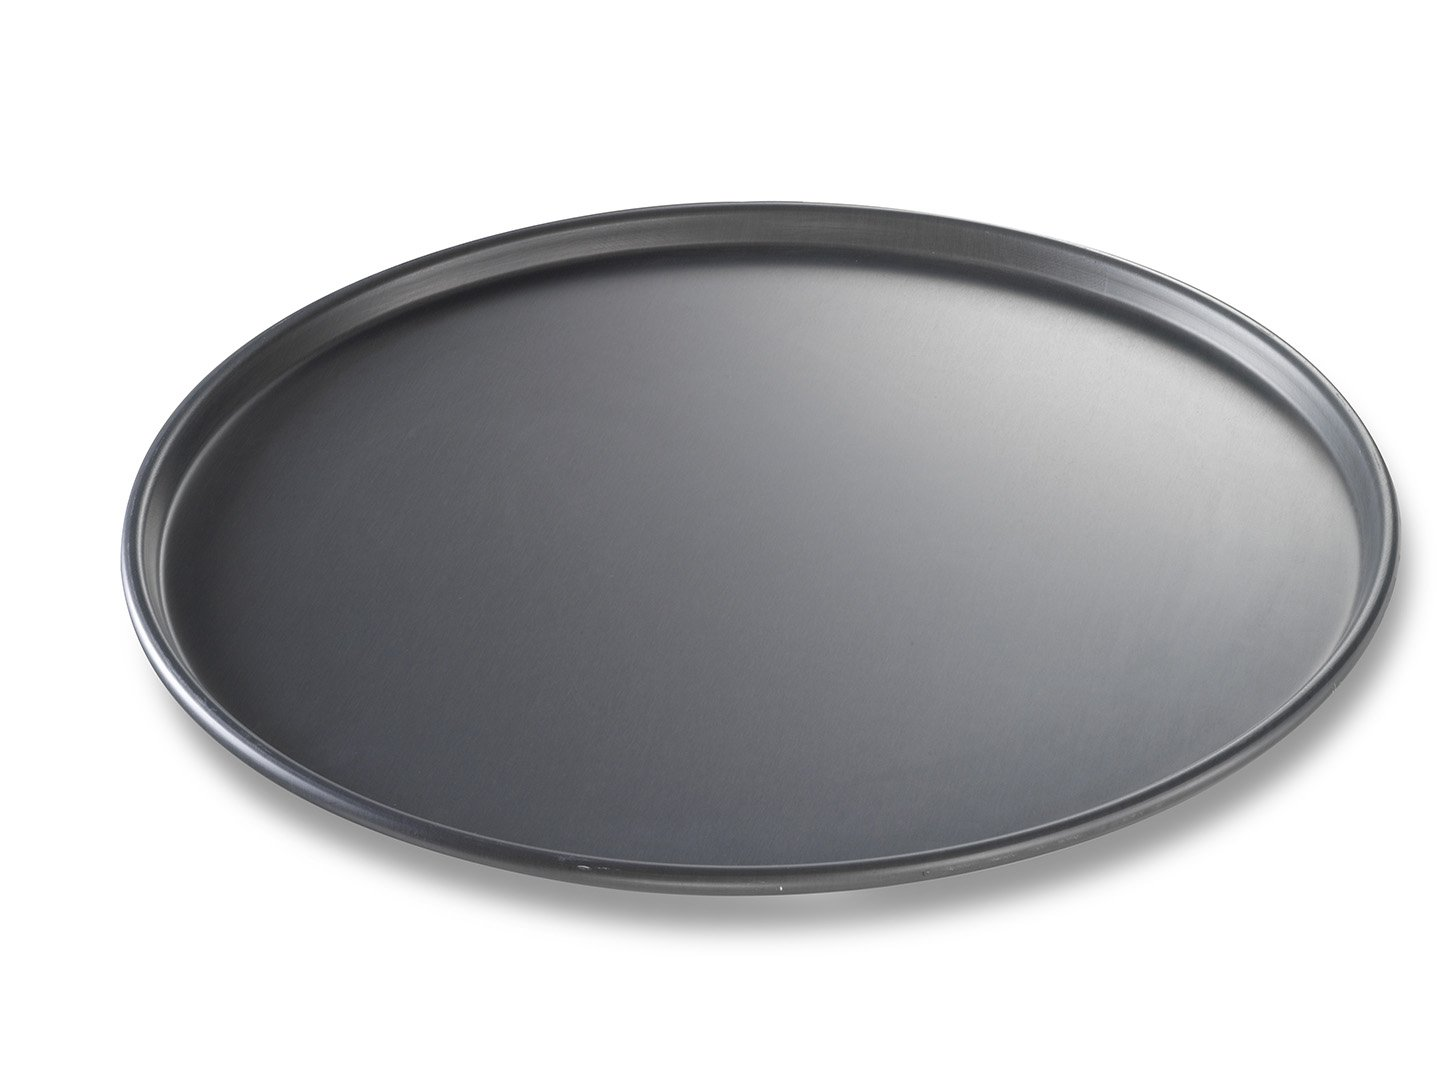 Round Thin Crust Pizza Pan – Anodized Aluminum